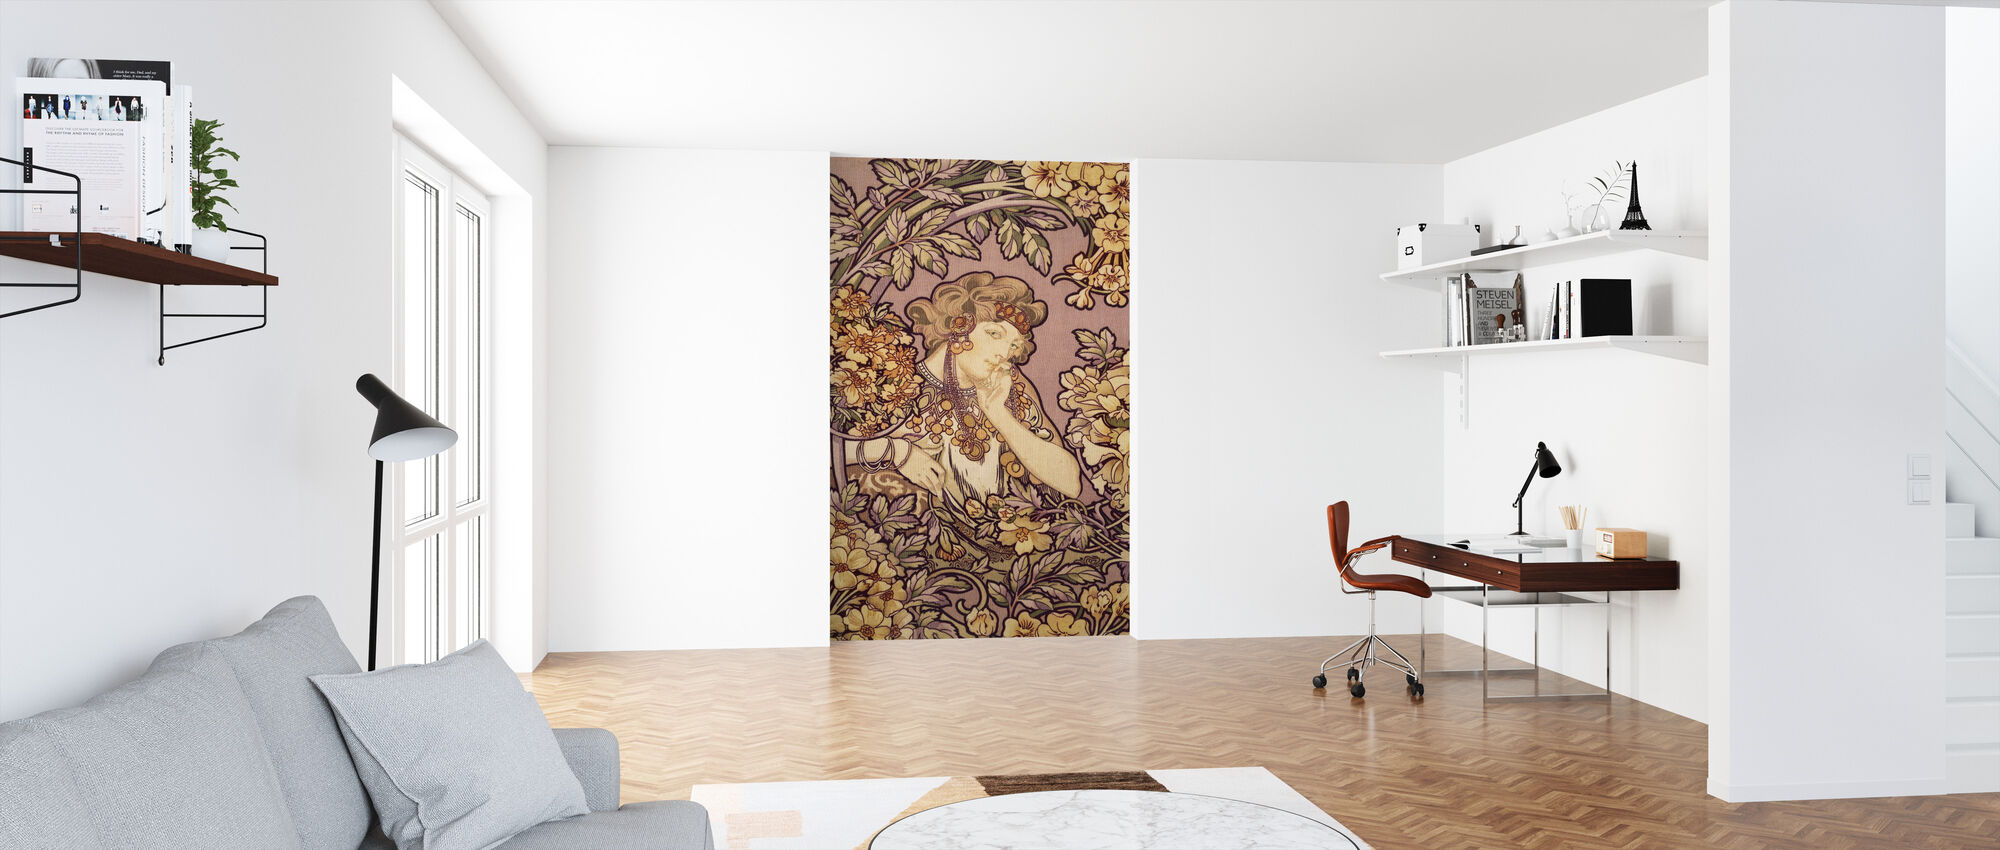 Alphonse Mucha - Colour Litho - Wallpaper - Office